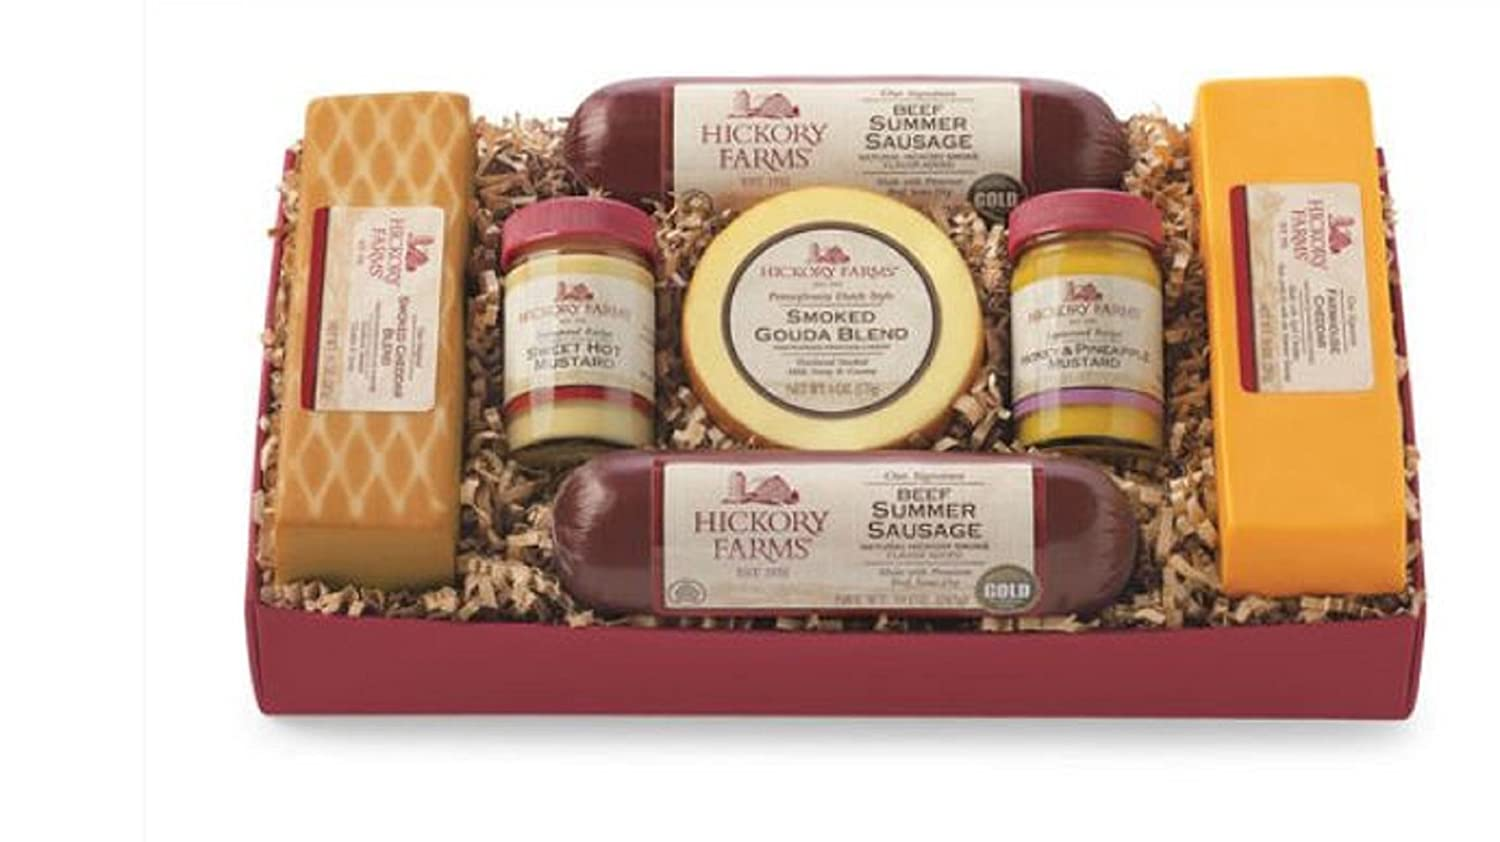 Amazon.com : Hickory Farms Gouda Cheese Summer Sausage Holiday Gift Box Set 3lbs : Grocery & Gourmet Food